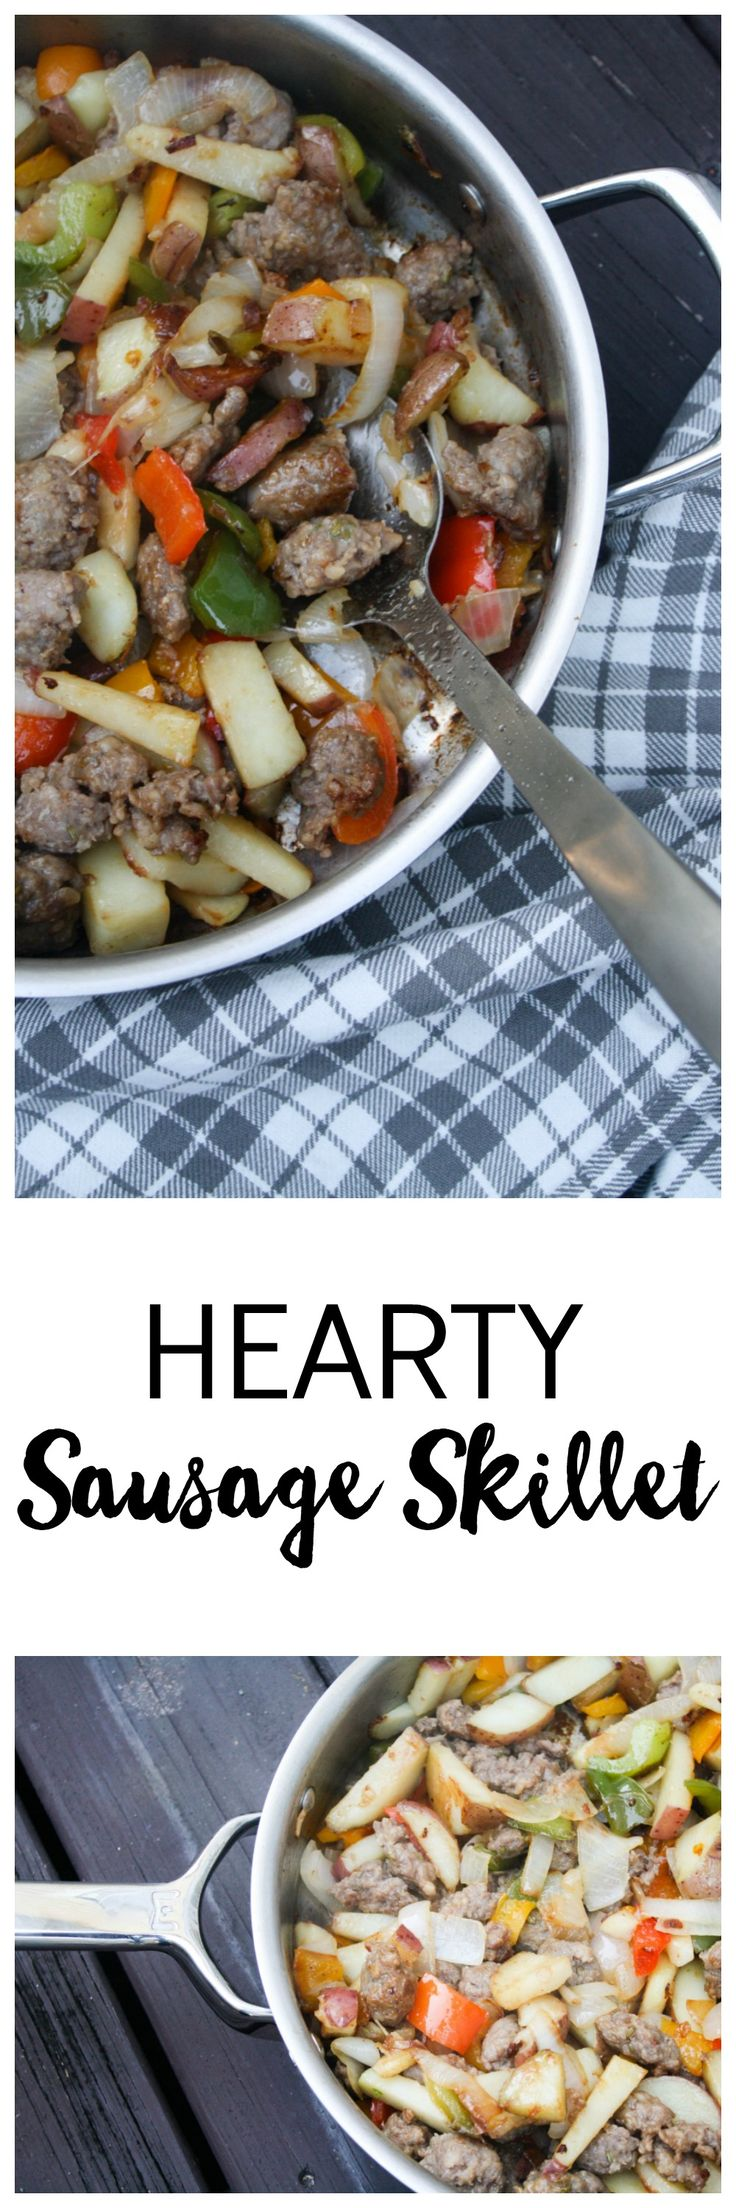 Try this easy, healthy dinner idea tonight! Hearty Sausage Skillet requires only a few minutes of prep work and is ready in under 30 minutes. This flavorful dish is going to be a hit with your family!